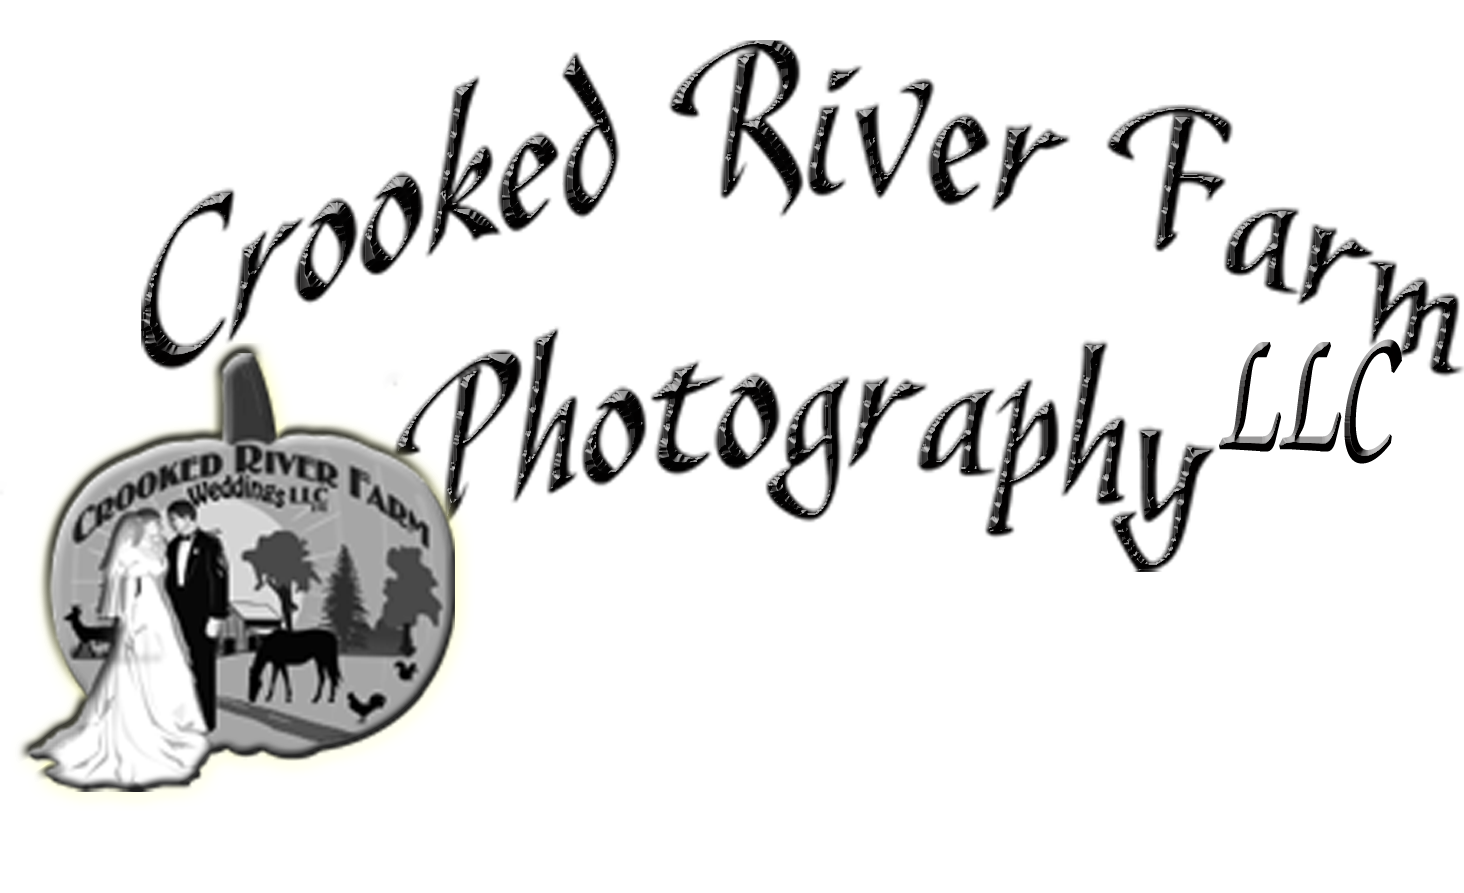 Crooked River Farm Photography